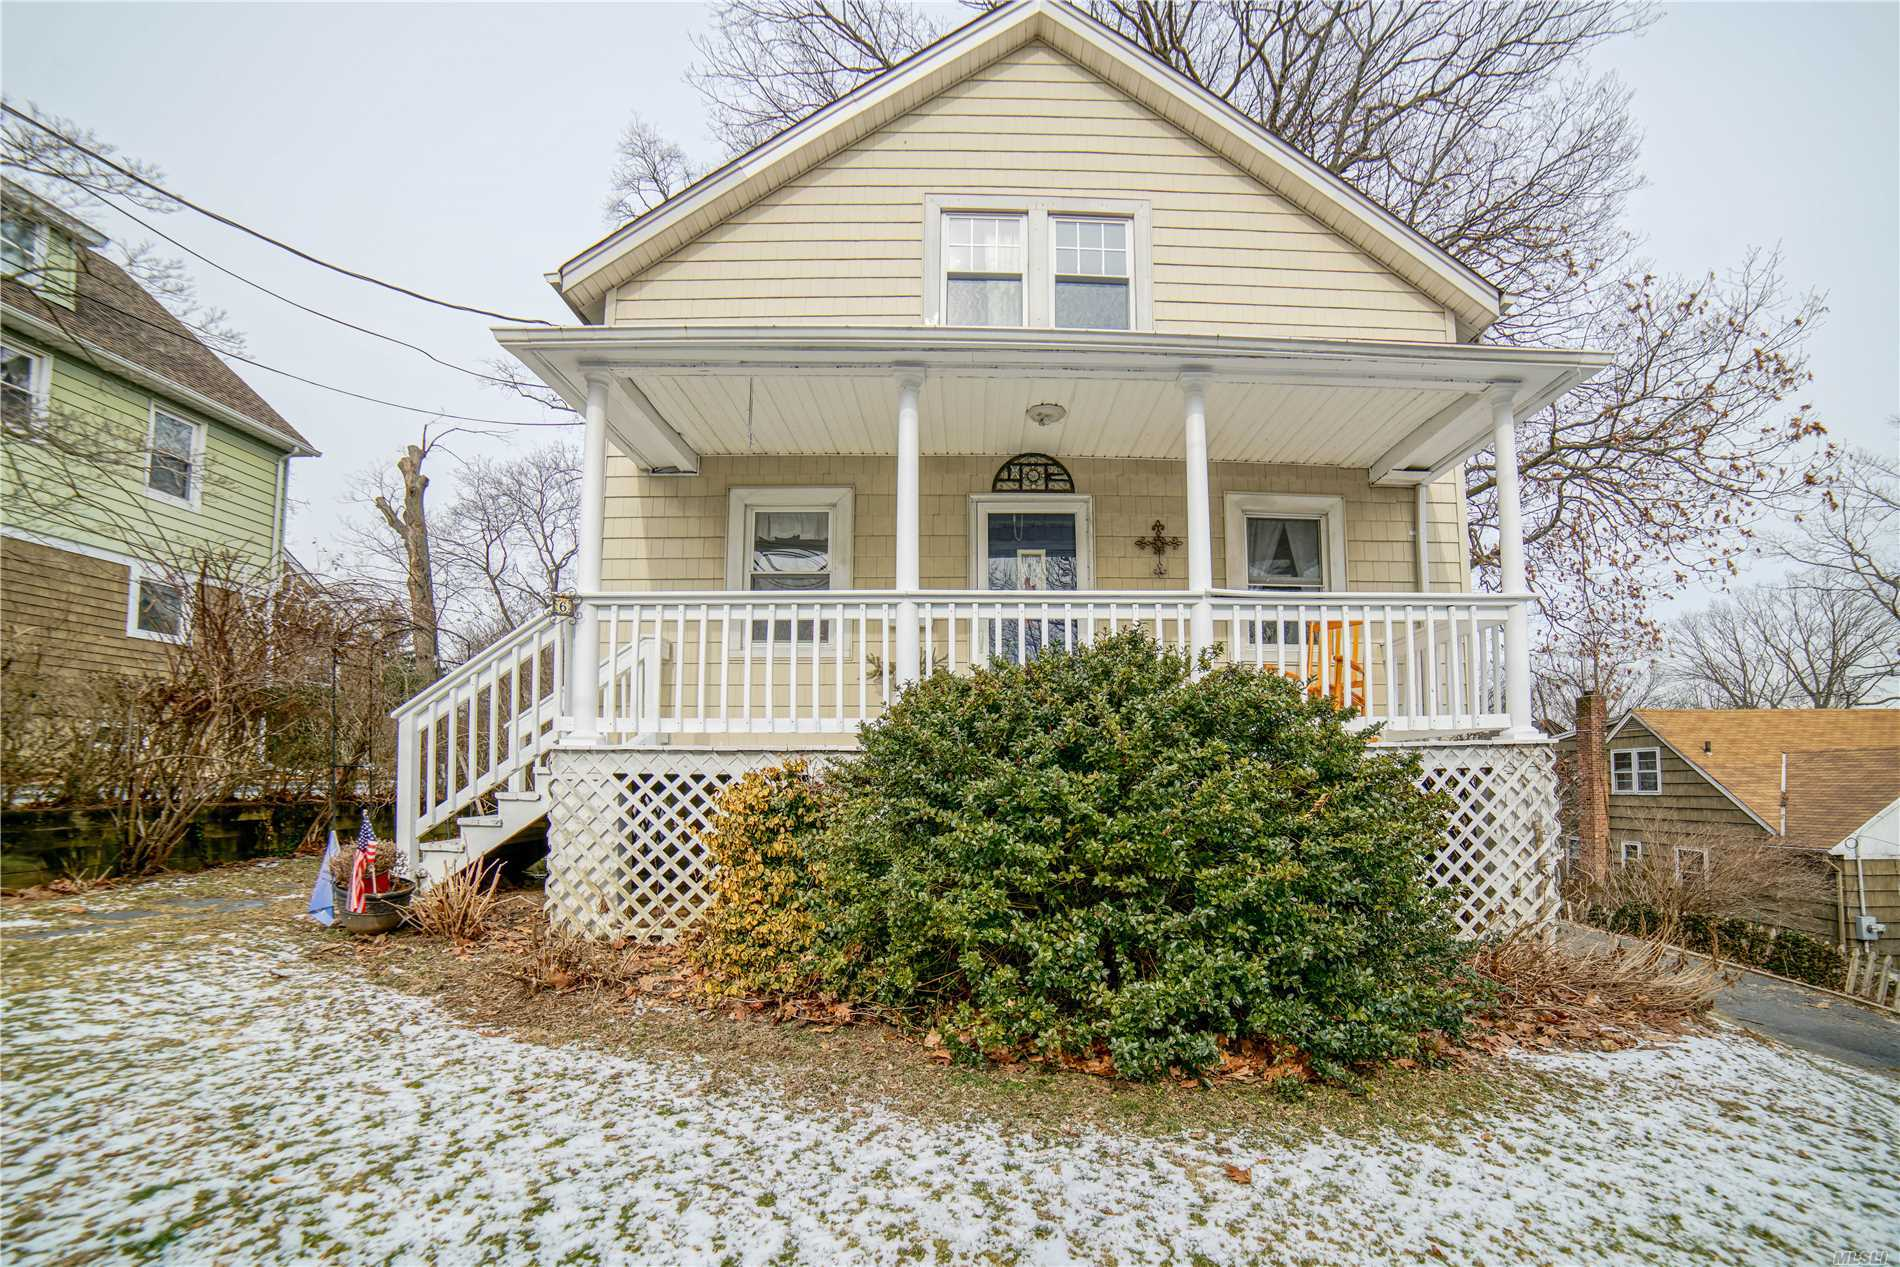 Five Bedroom Colonial Nestled In Thomaston. Master Suite With Private Balcony & Four Additional Bedrooms. Main Level Offers Eik, Formal Dr, Parlor, Great Room With Pocket Doors To Private Study. Picture Perfect Guest Bath. Great For Entertaining- Huge Deck In Back Yard With Terrific Yard & Great Front Porch.